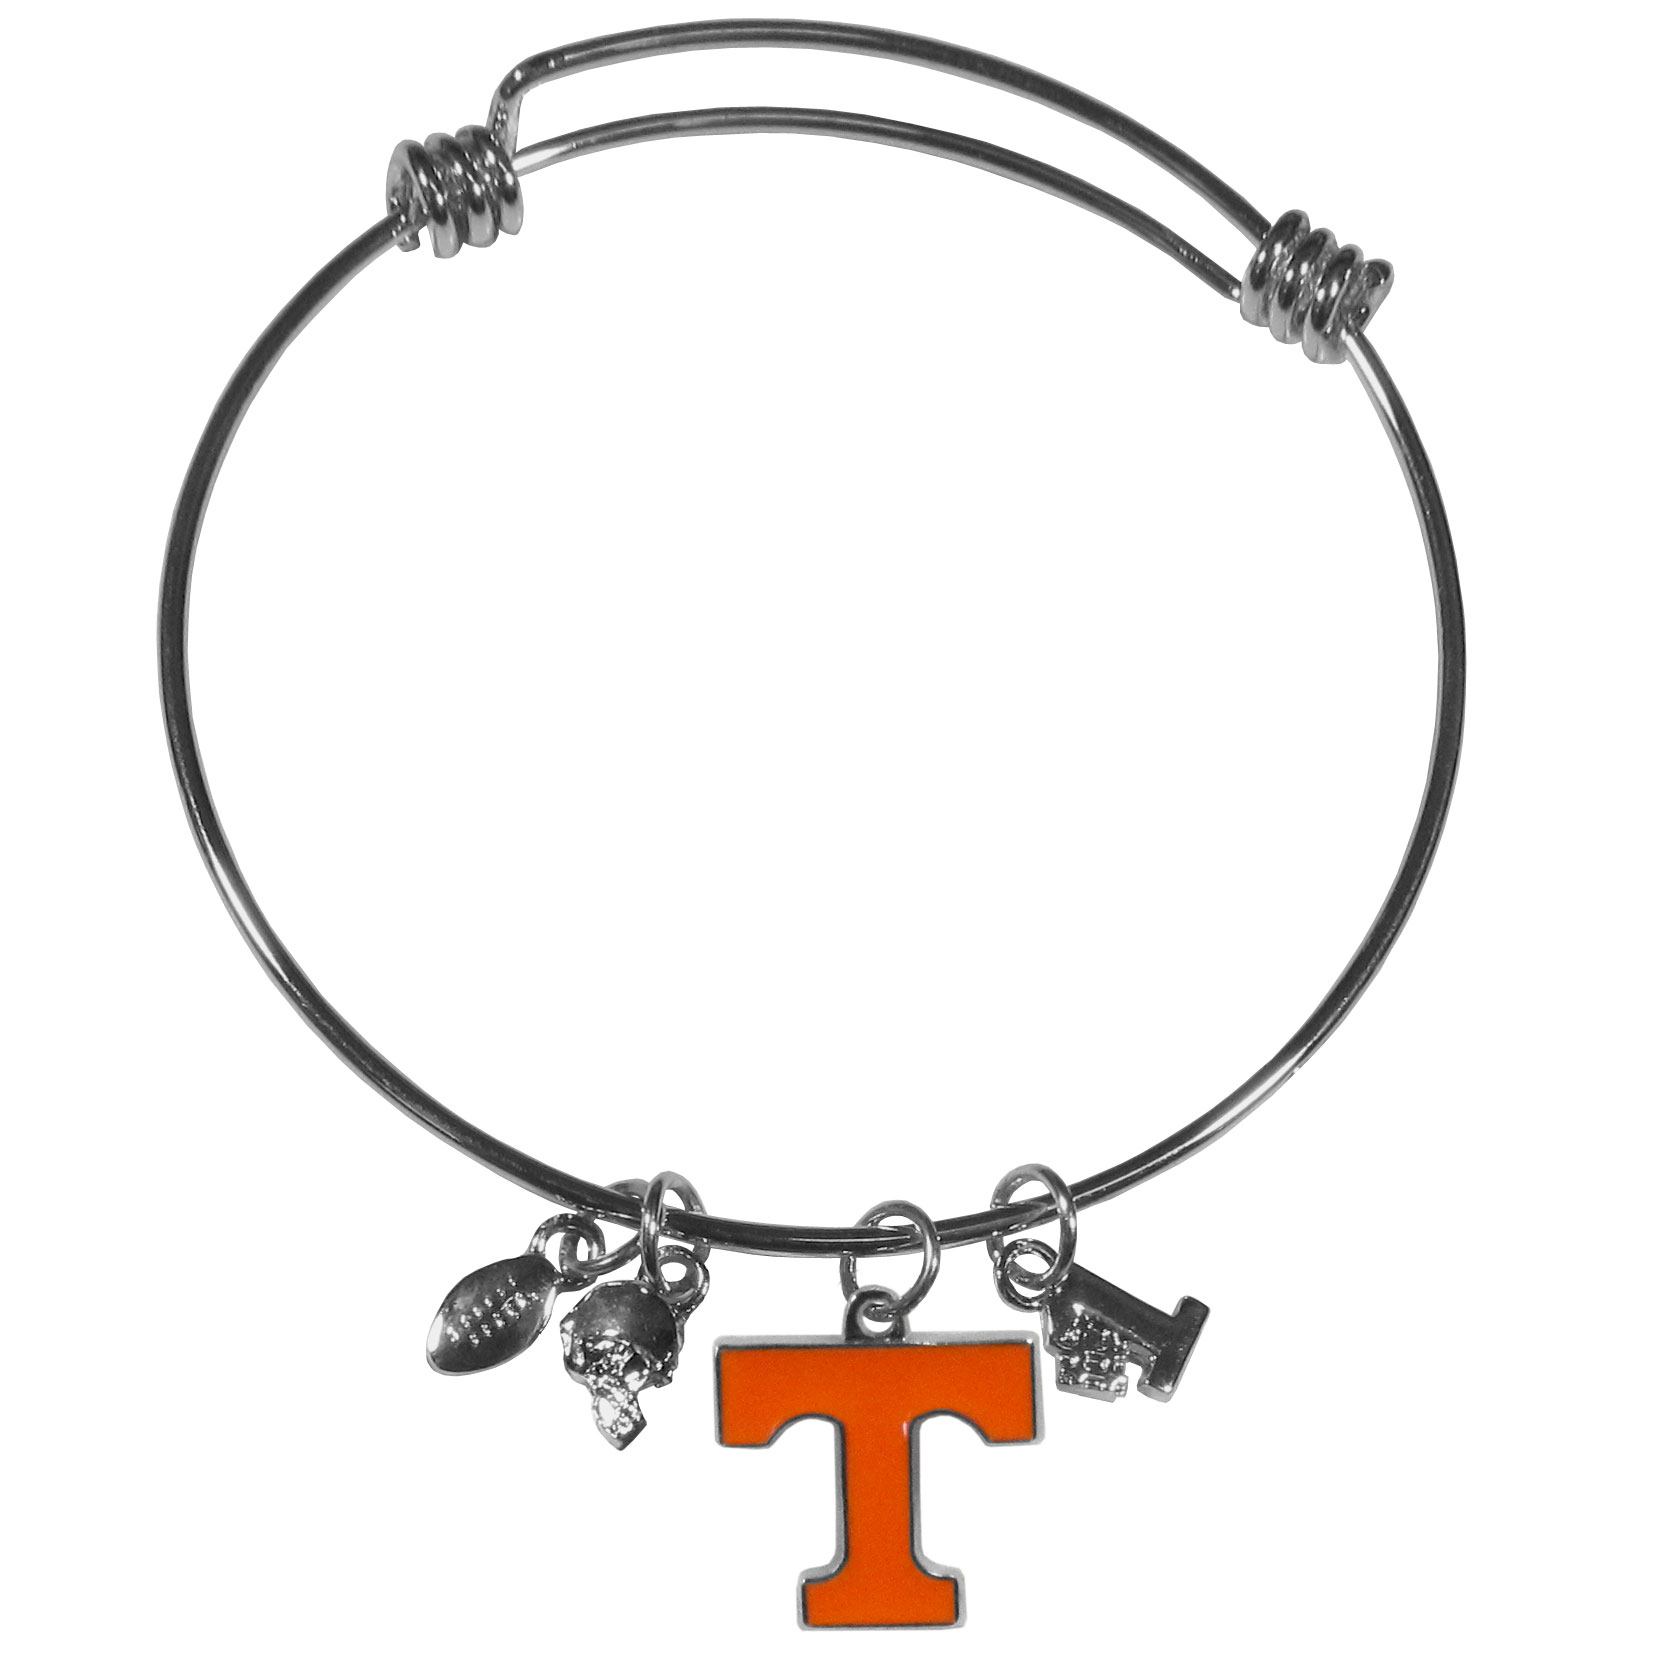 Tennessee Volunteers Charm Bangle Bracelet - Adjustable wire bracelets are all the rage and this Tennessee Volunteers bracelet matches the popular trend with your beloved team. The bracelet features 4 charms in total, each feature exceptional detail and the team charm has enameled team colors.